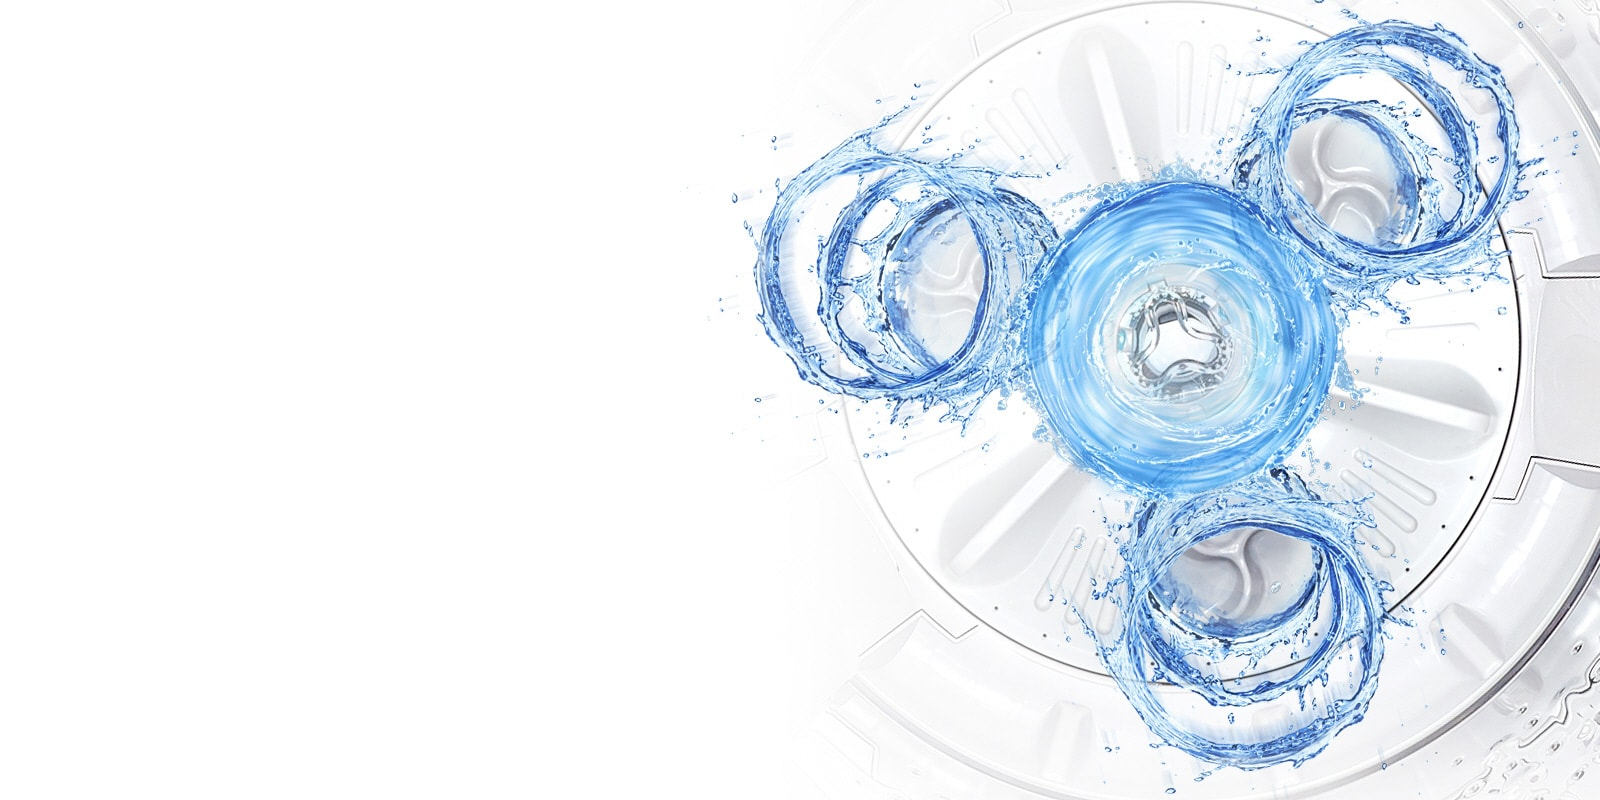 A view down inside the washer shows where the three water punches are located. Blue water shows how the system produces 3 vertical water currents.